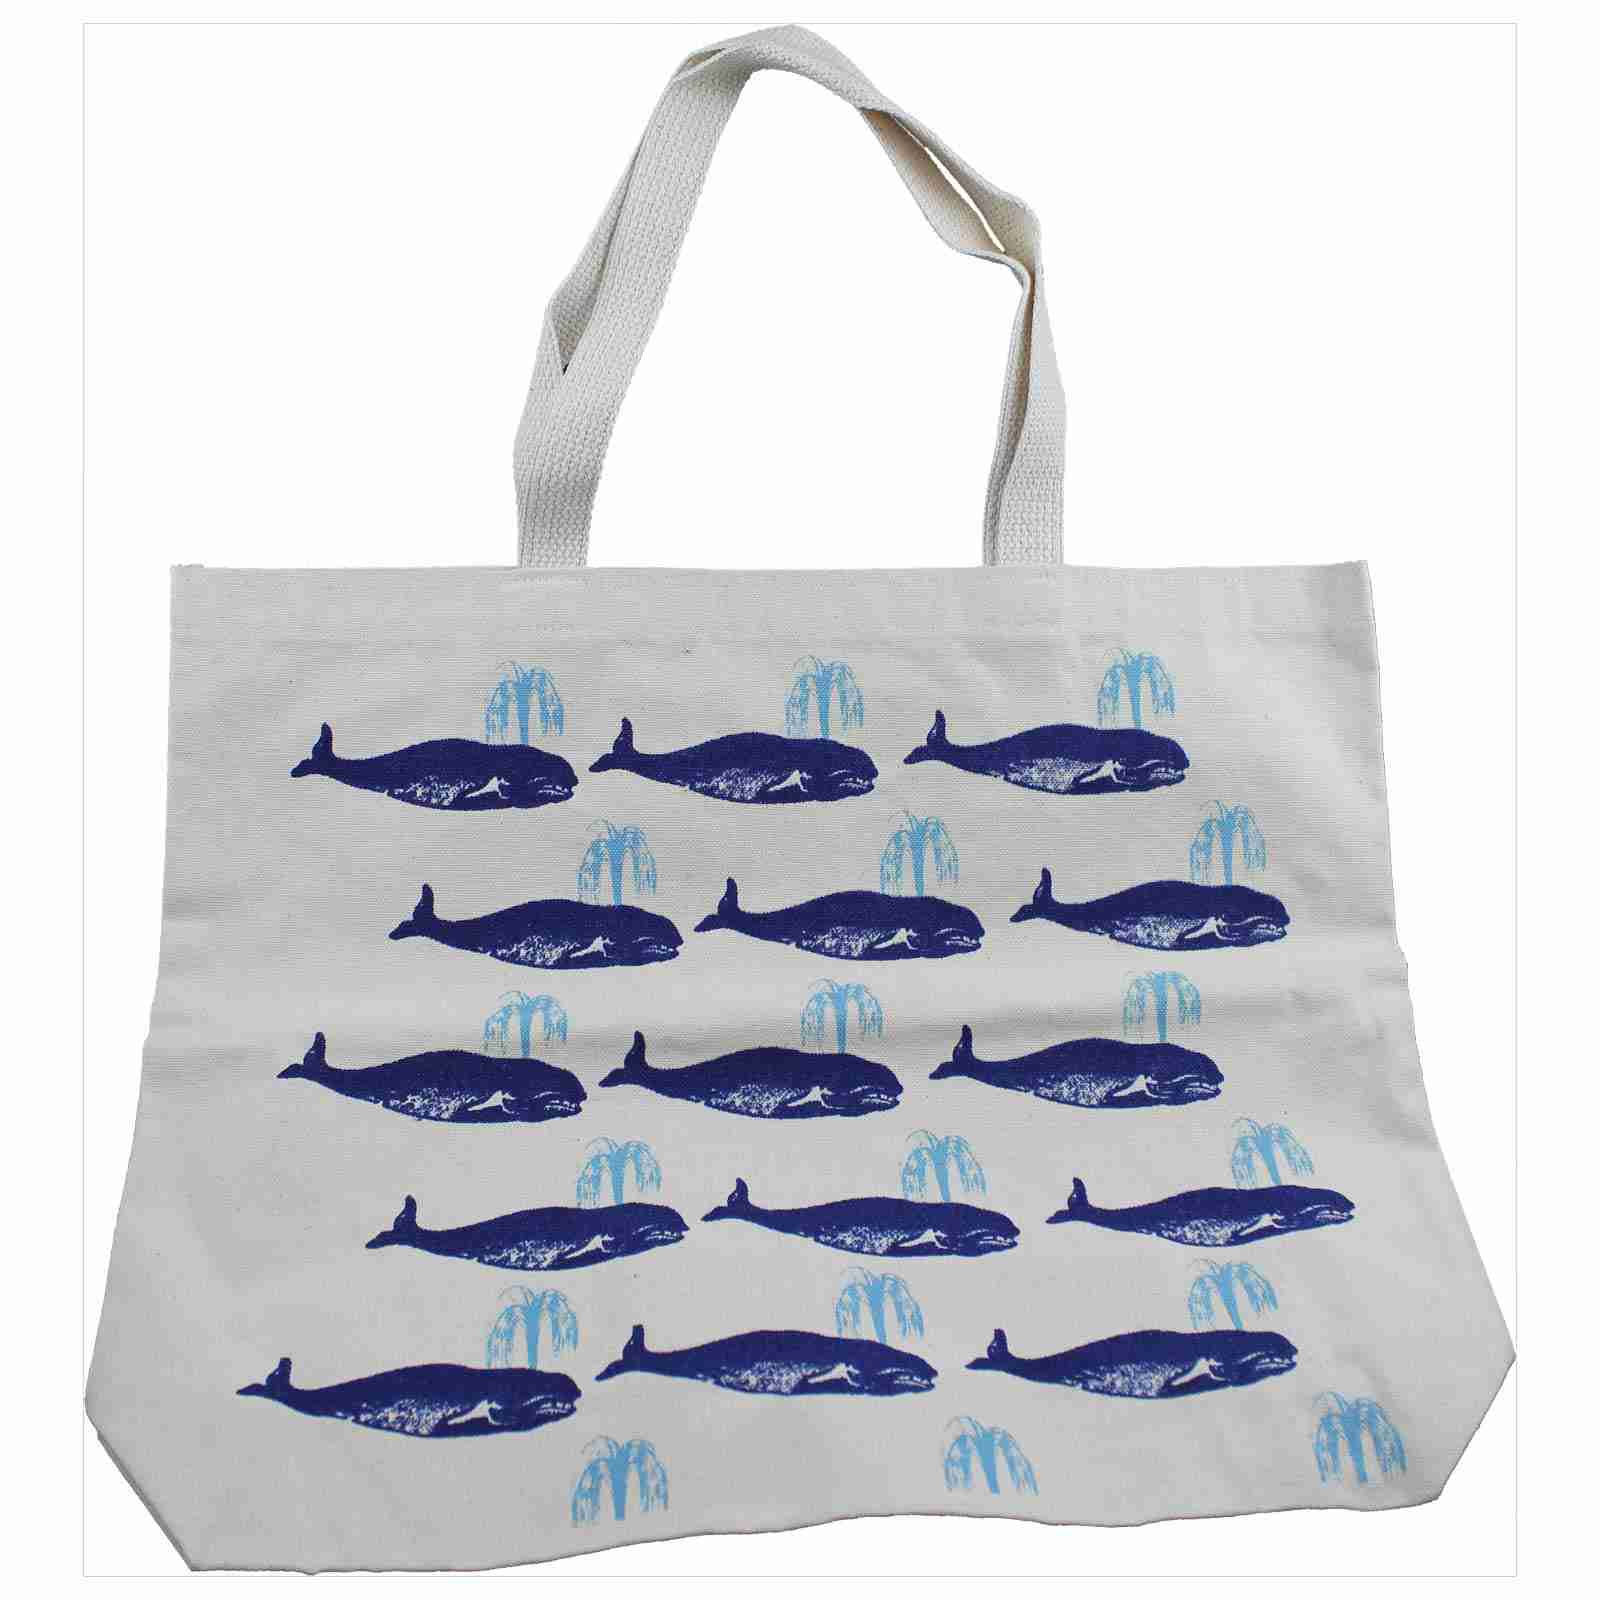 Hand Printed Canvas Tote Bag (Long) - Whales Blue